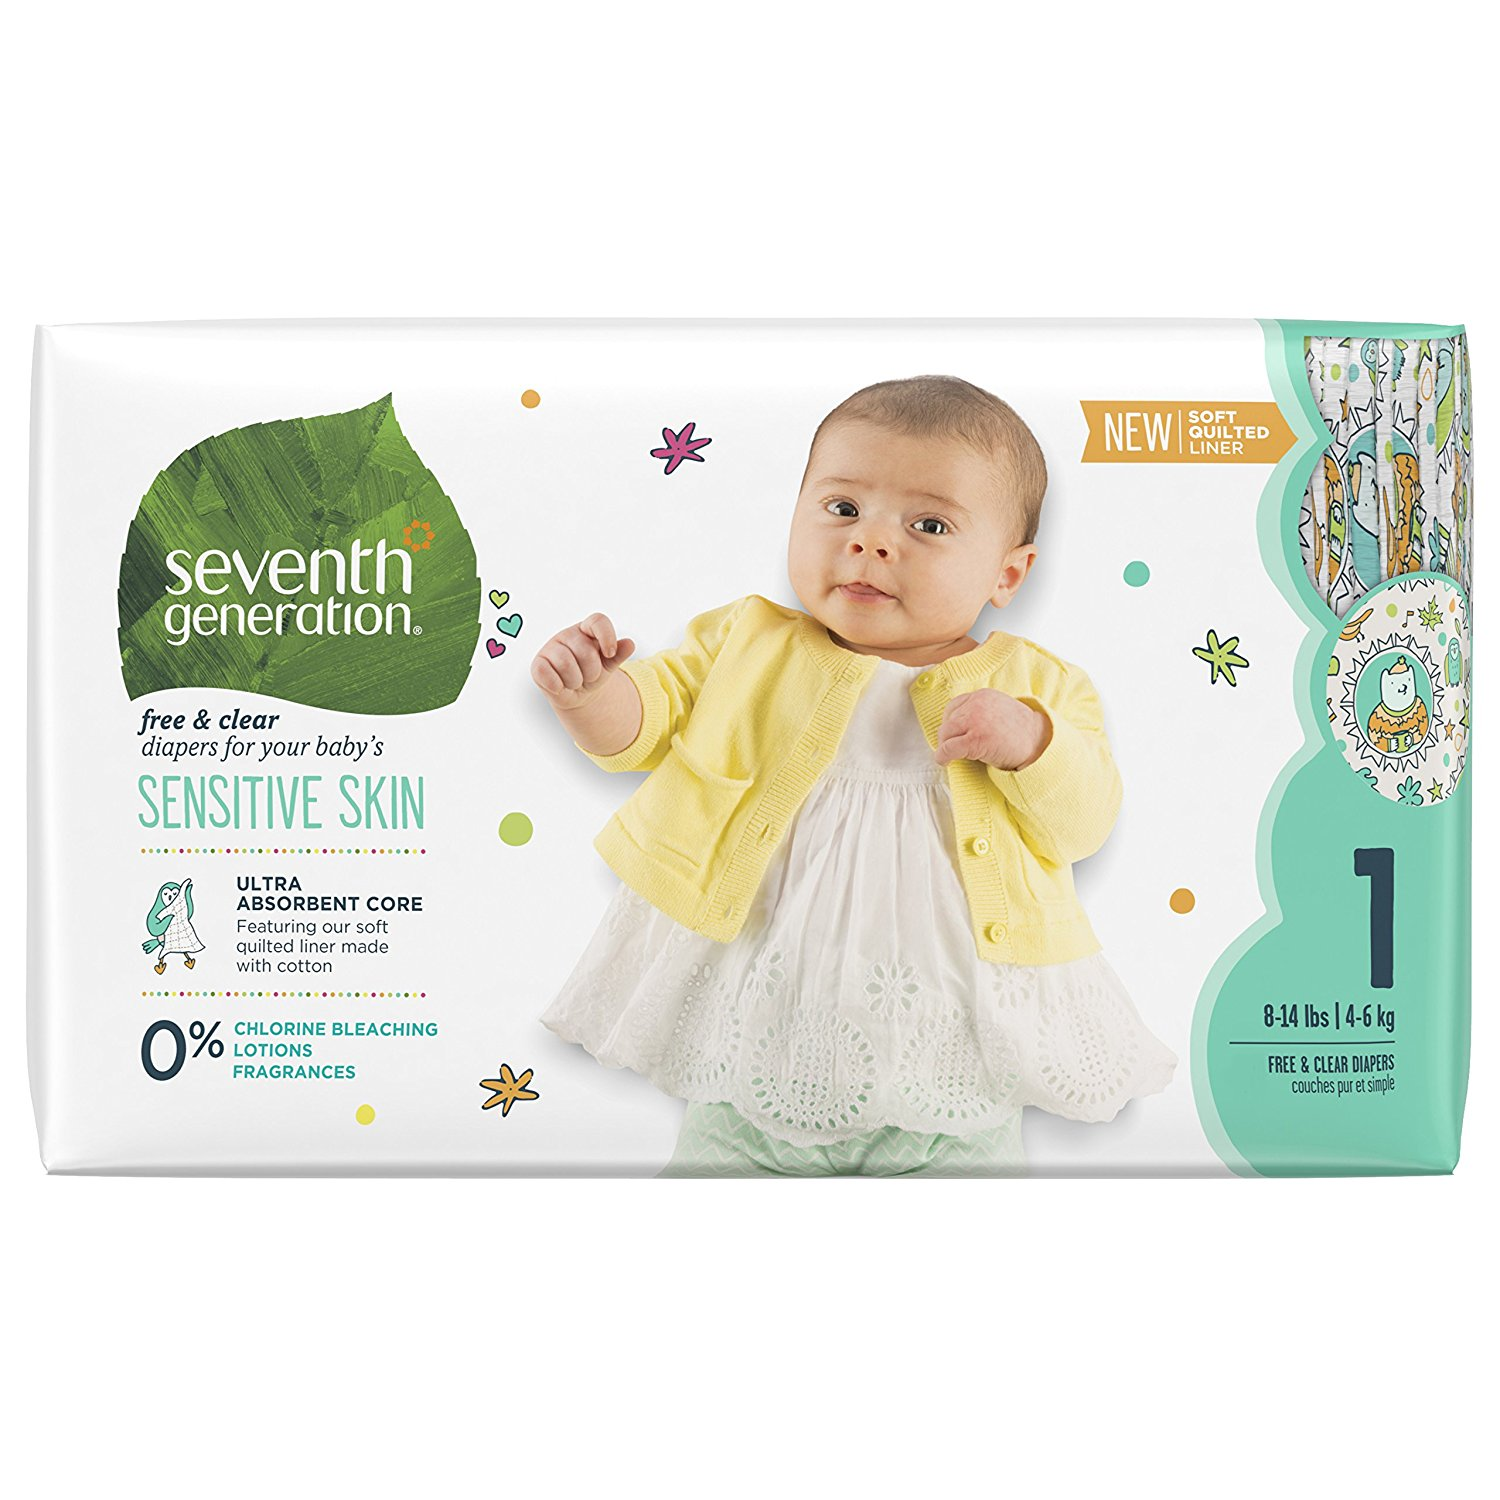 seventh generation diapers, disposable diapers, animal print diapers, eco-friendly diapers, best disposable diapers